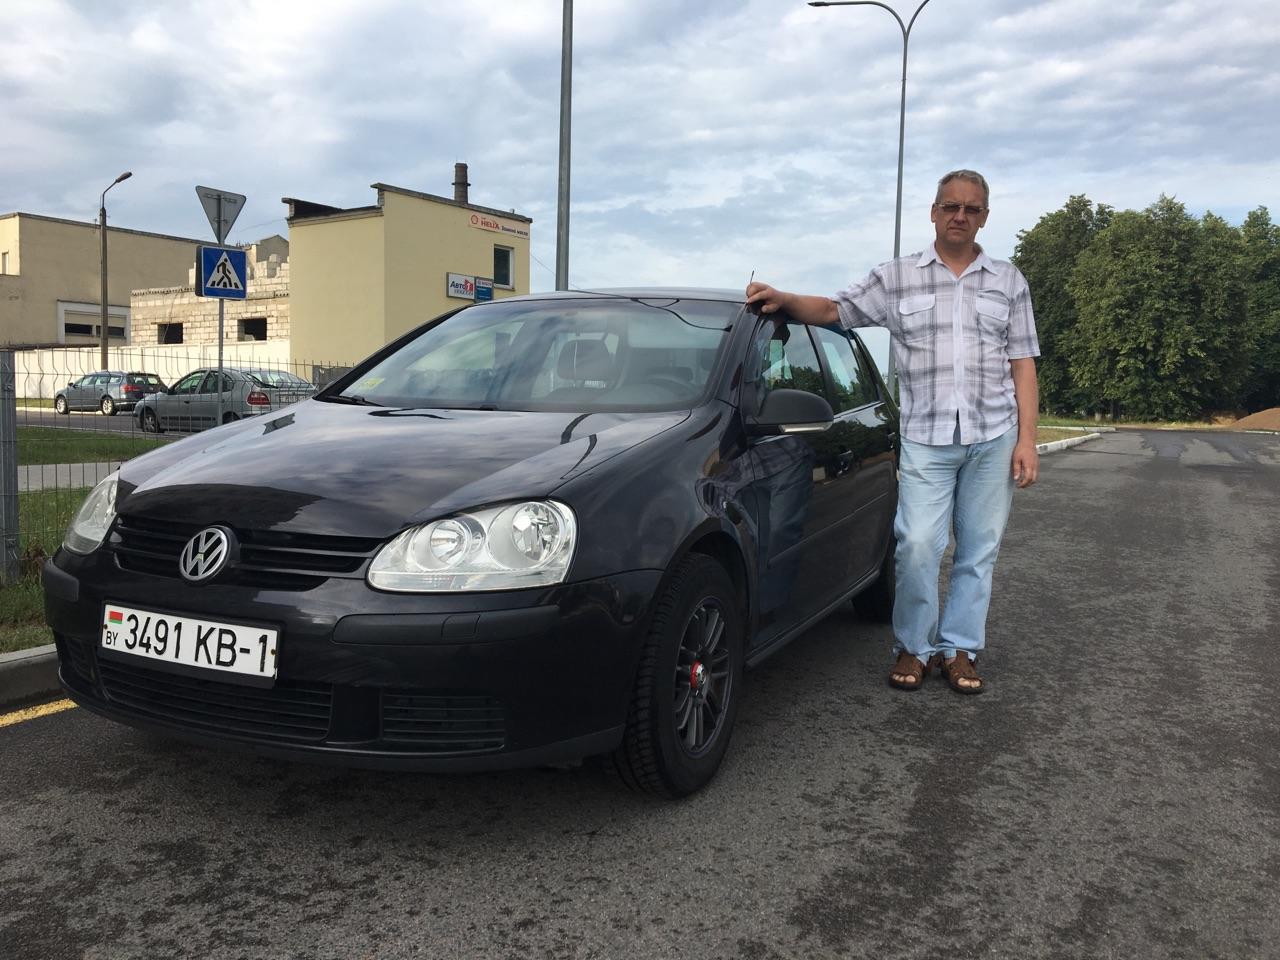 Андрей Бубен – владелец автомобиля Volkswagen Golf V 2007 года выпуска.  Фото: Екатерина БУБЕН